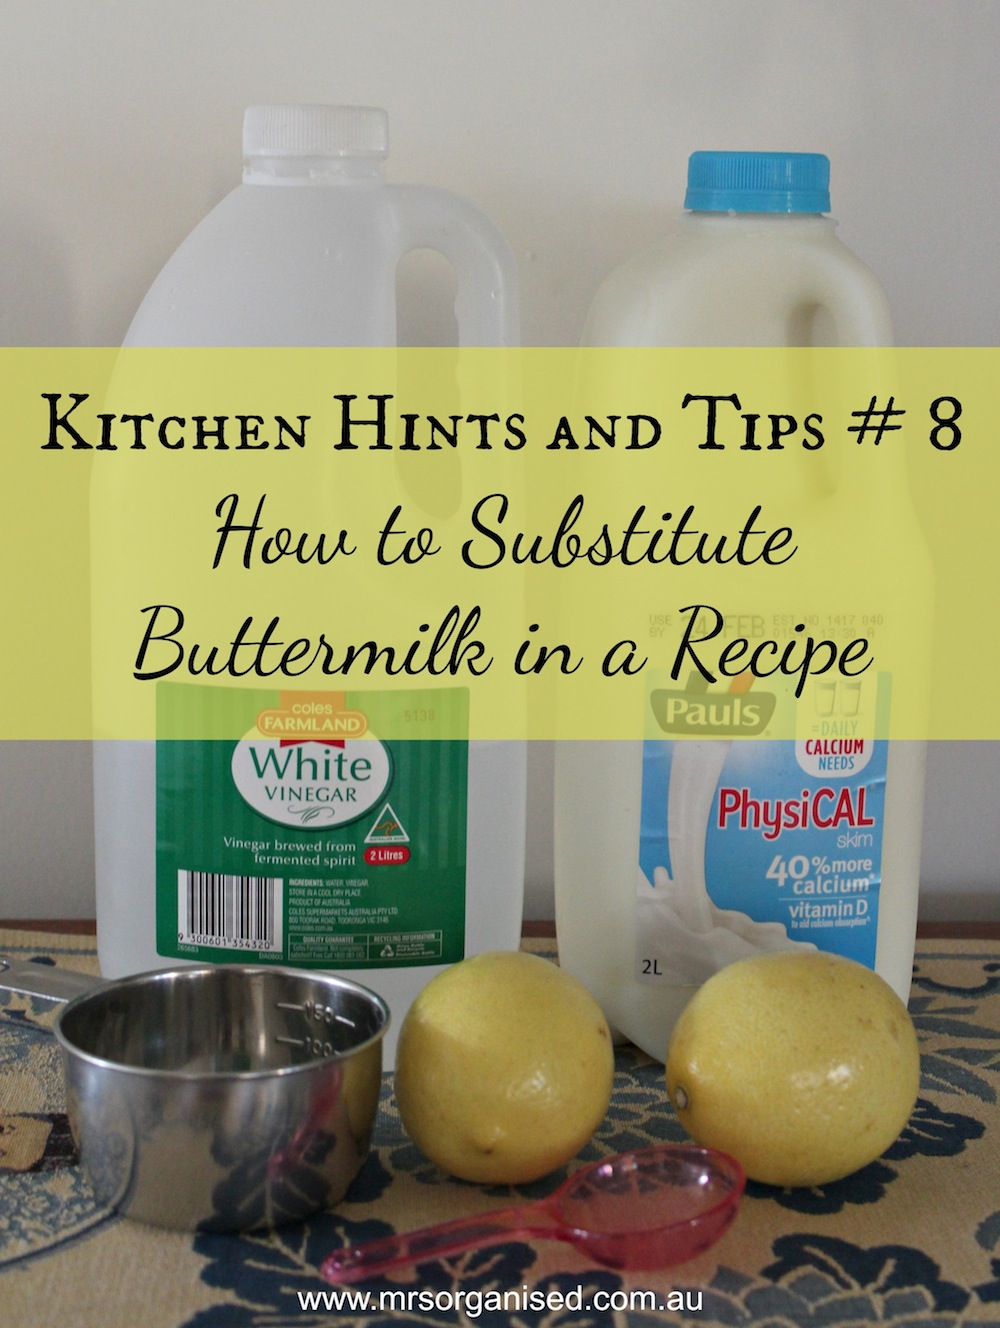 Kitchen Hints and Tips # 8 … How to Substitute Buttermilk in a Recipe 001